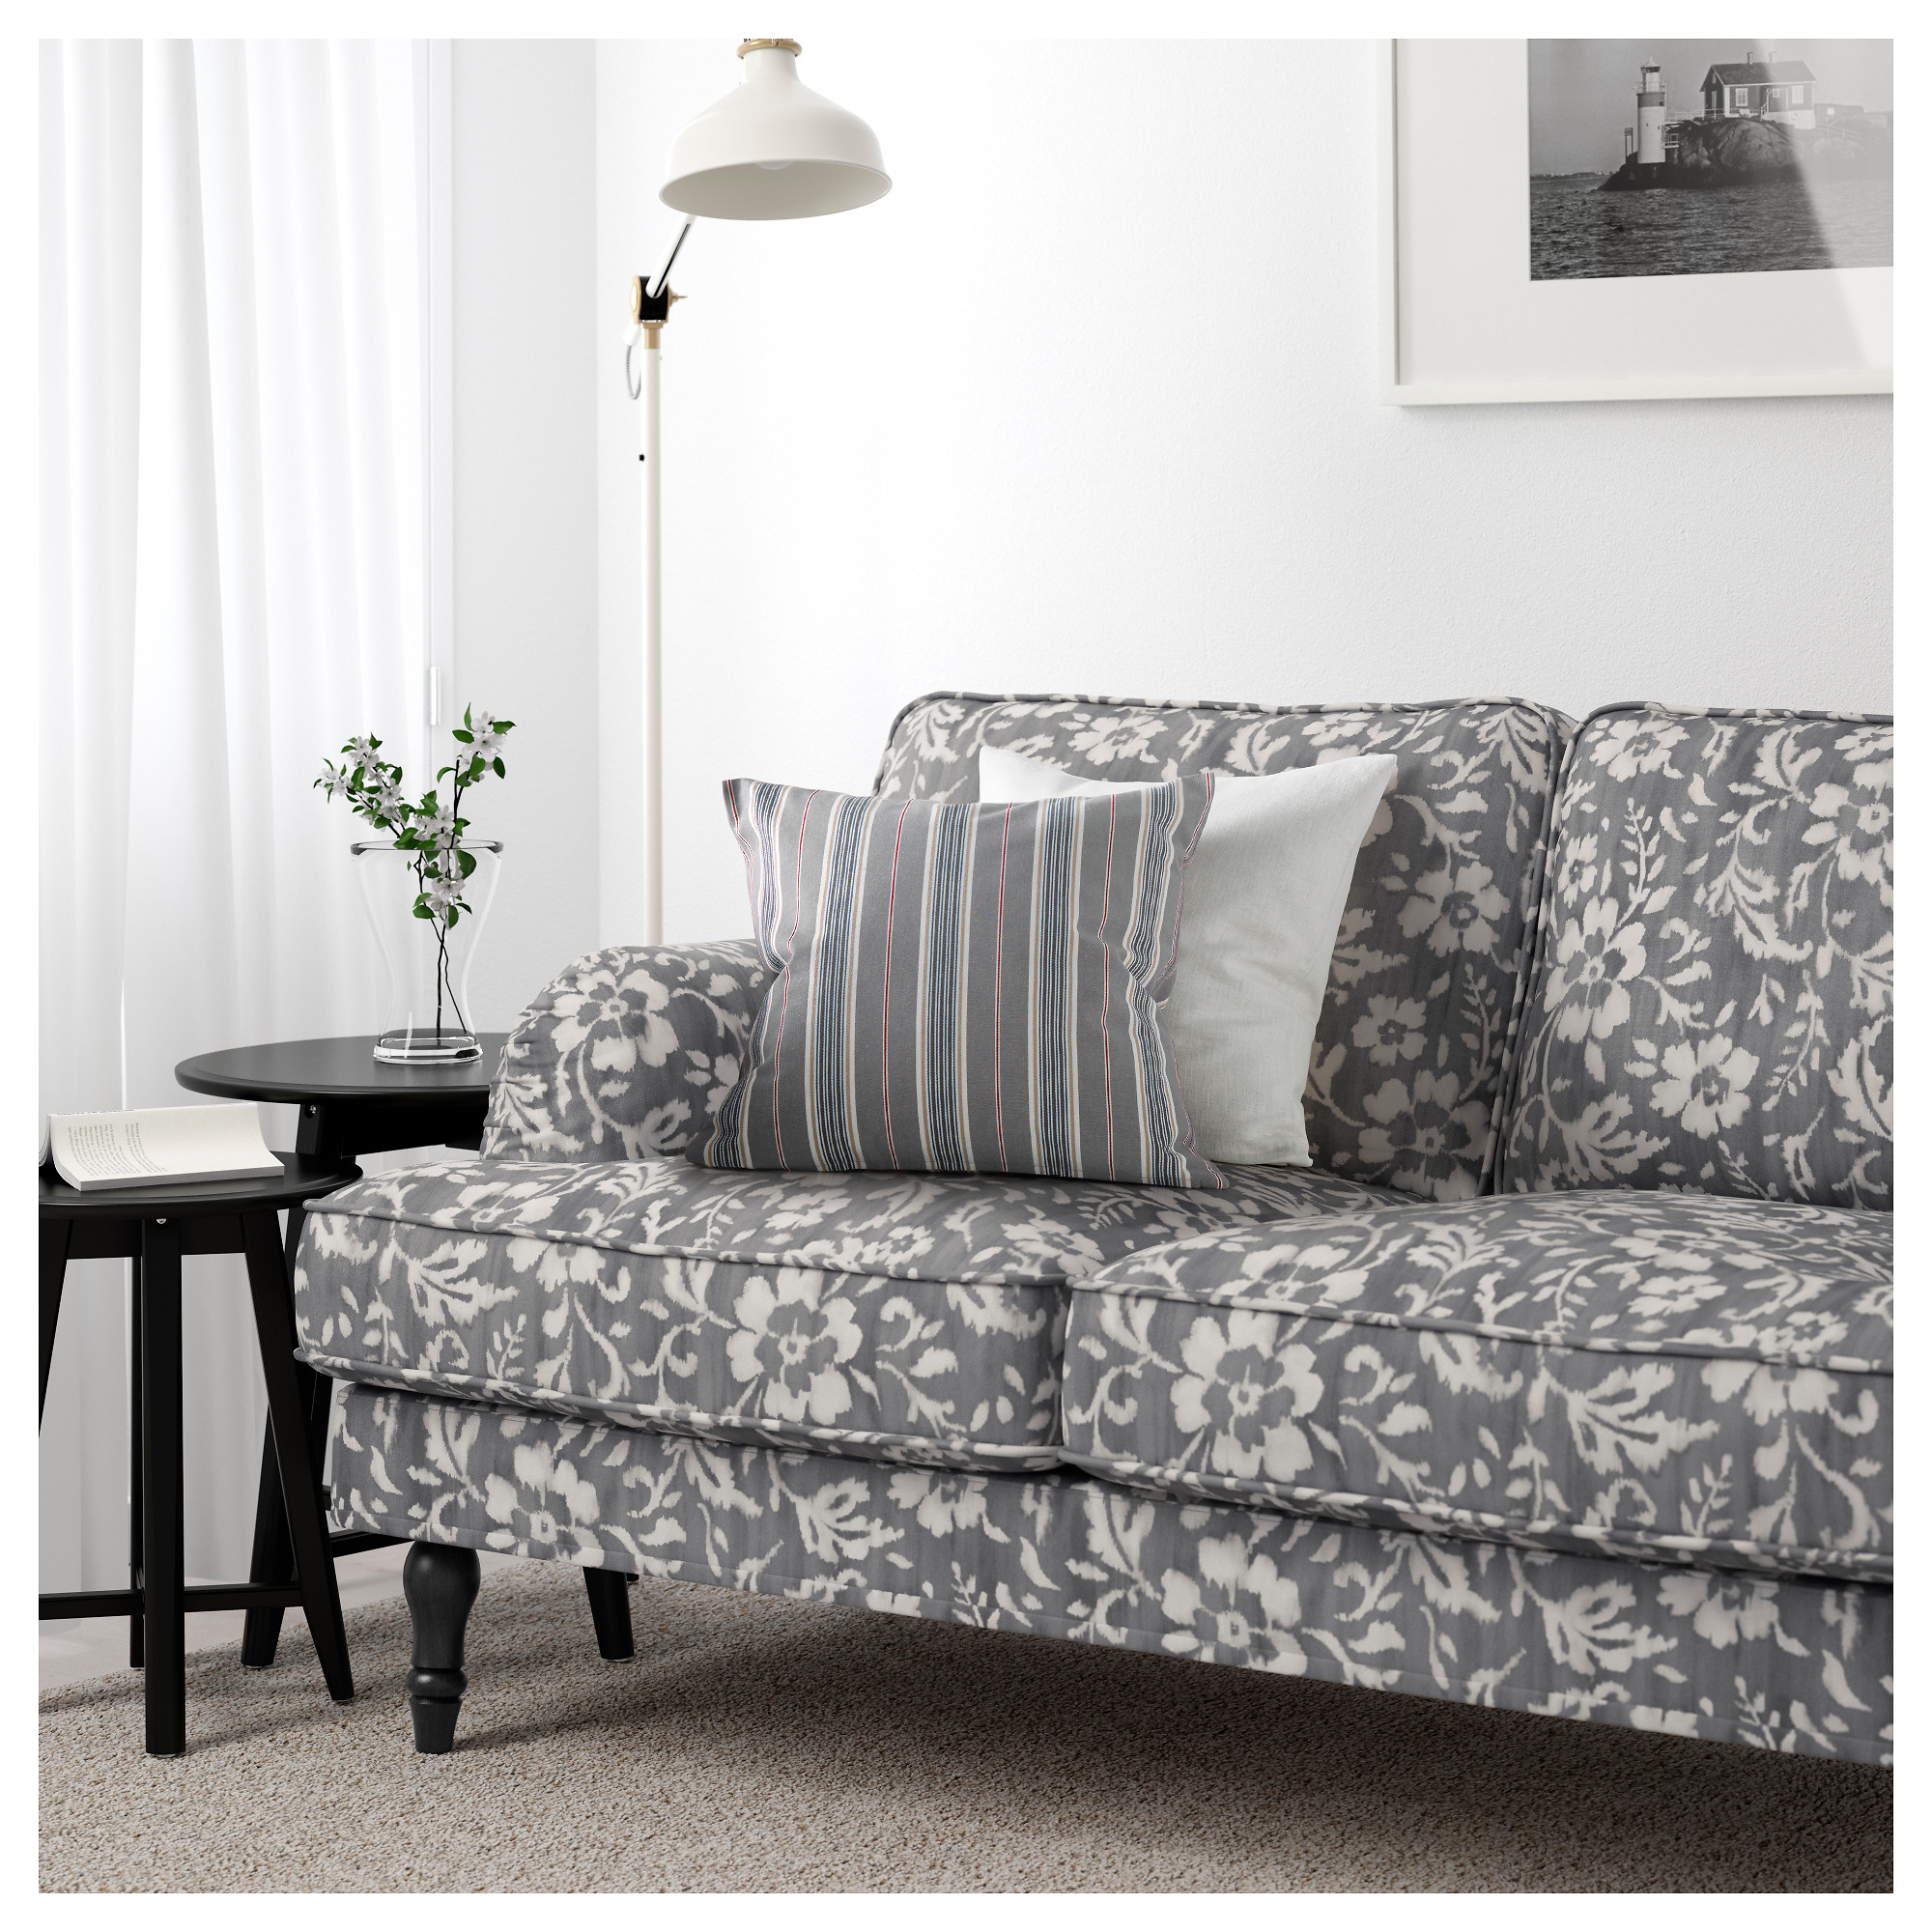 Stocksund sofa nolhaga dark gray black ikea parisarafo Choice Image